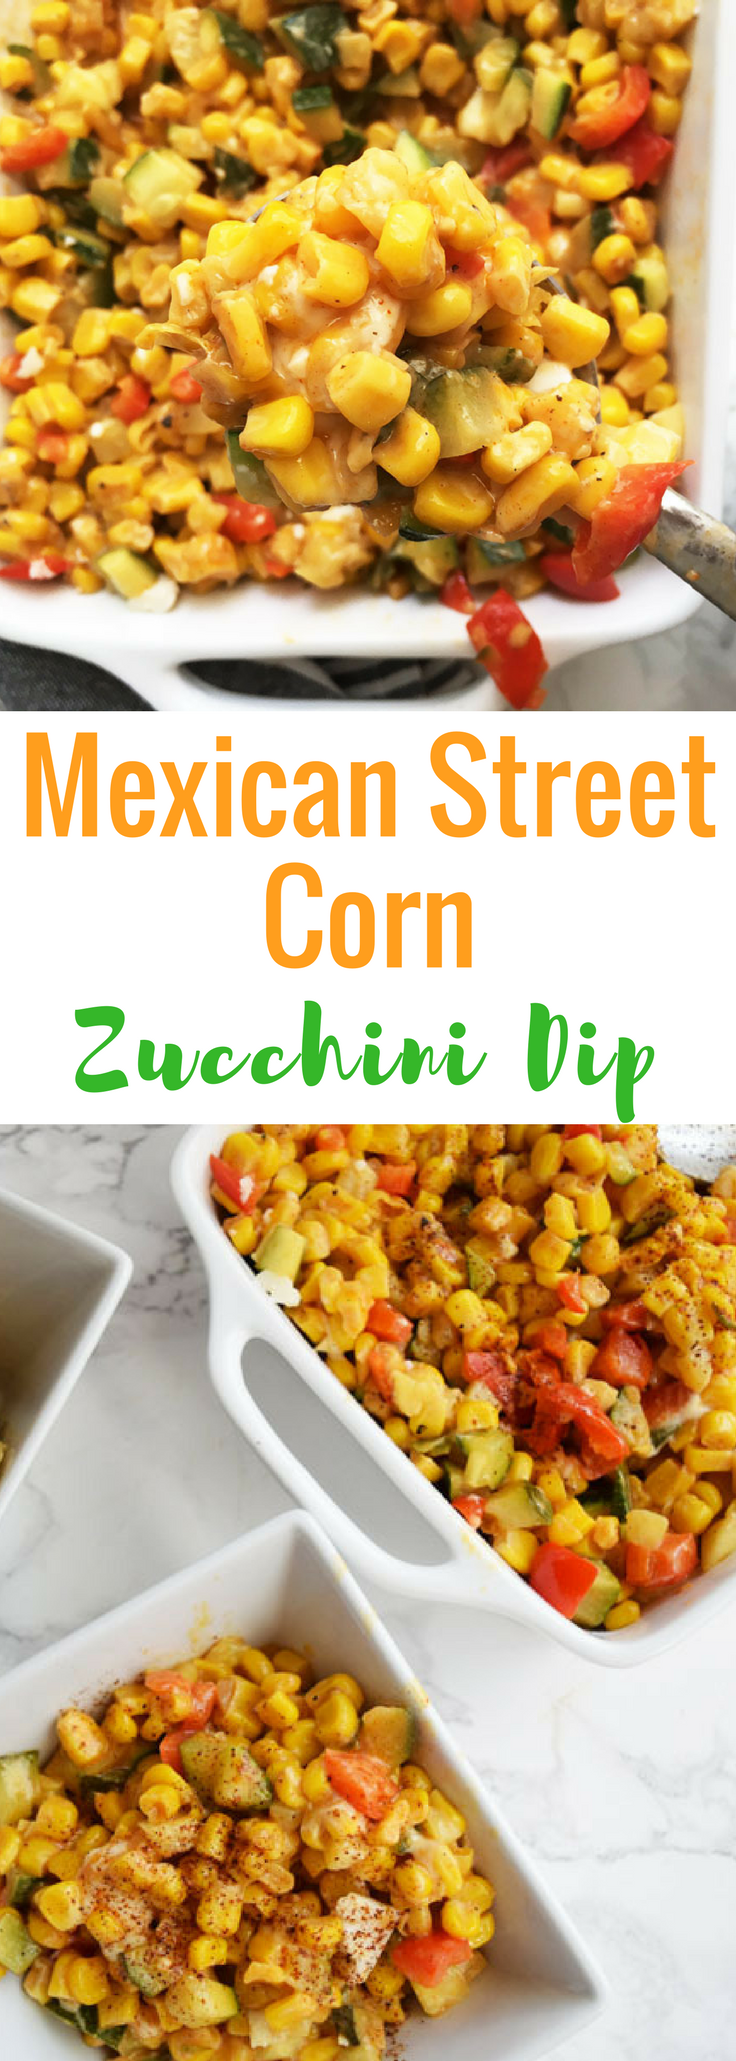 A delicious, cheesy and veggie filled Mexican Street Corn Dip with a little bit of a kick || Mexican Street Corn Zucchini Dip